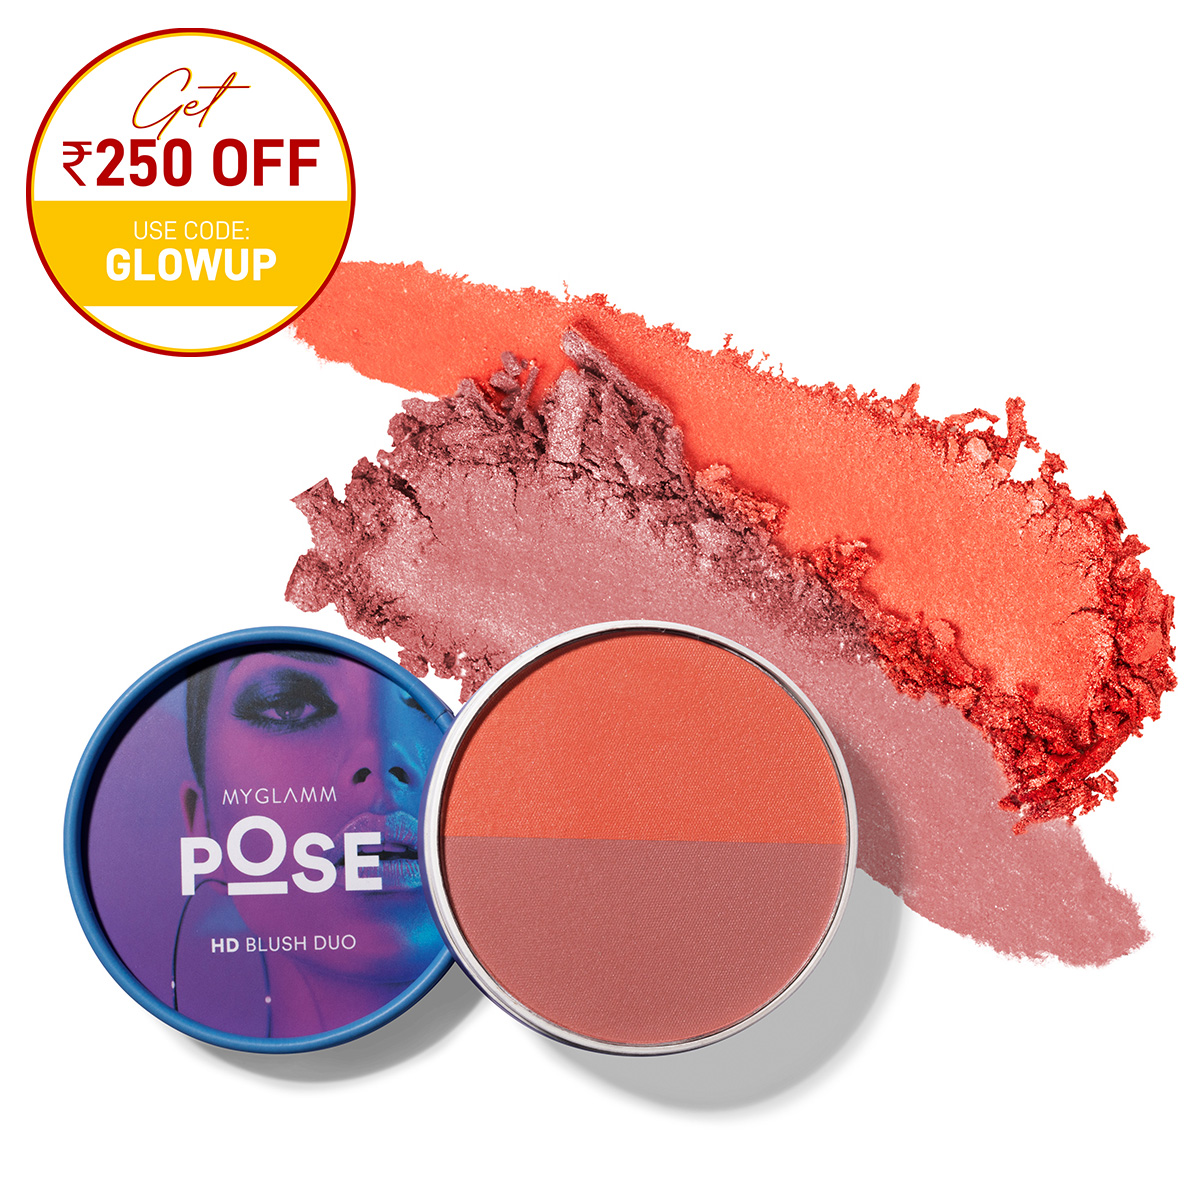 pose-hd-blush-duo-coral-_-punch